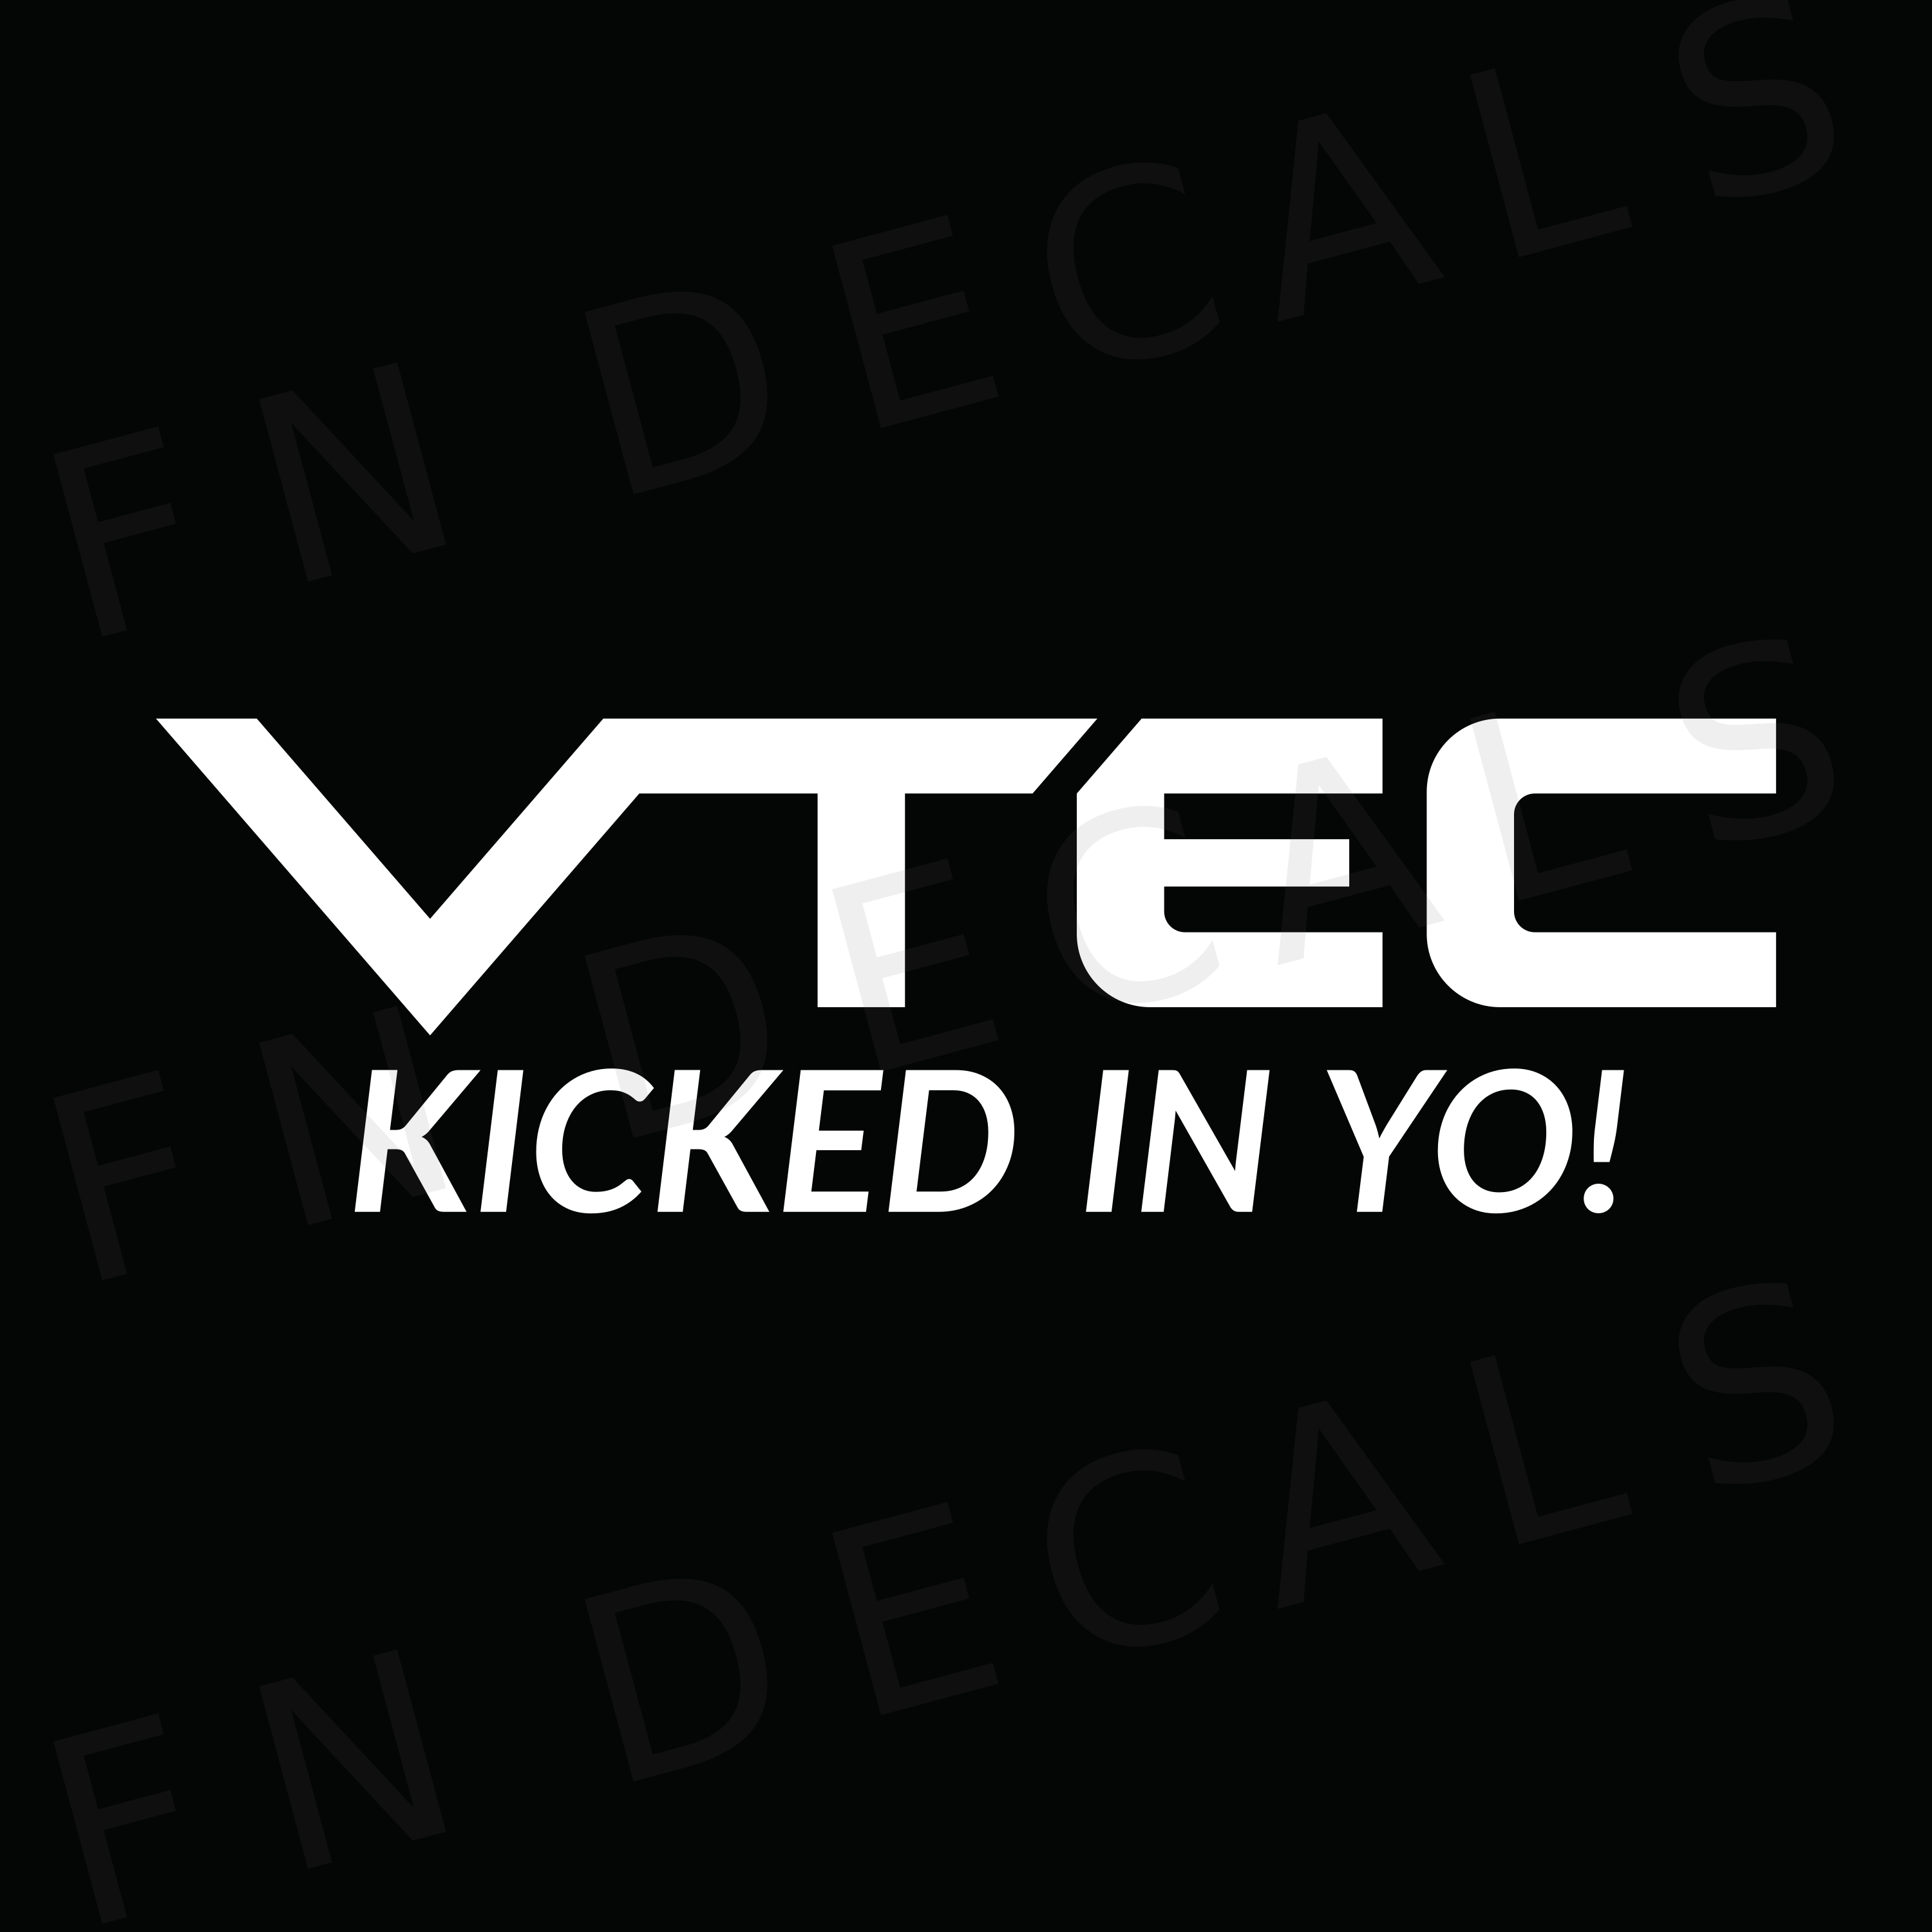 VTEC Kicked In Yo! Custom Car Window Vinyl Decal Sticker - FN Decals